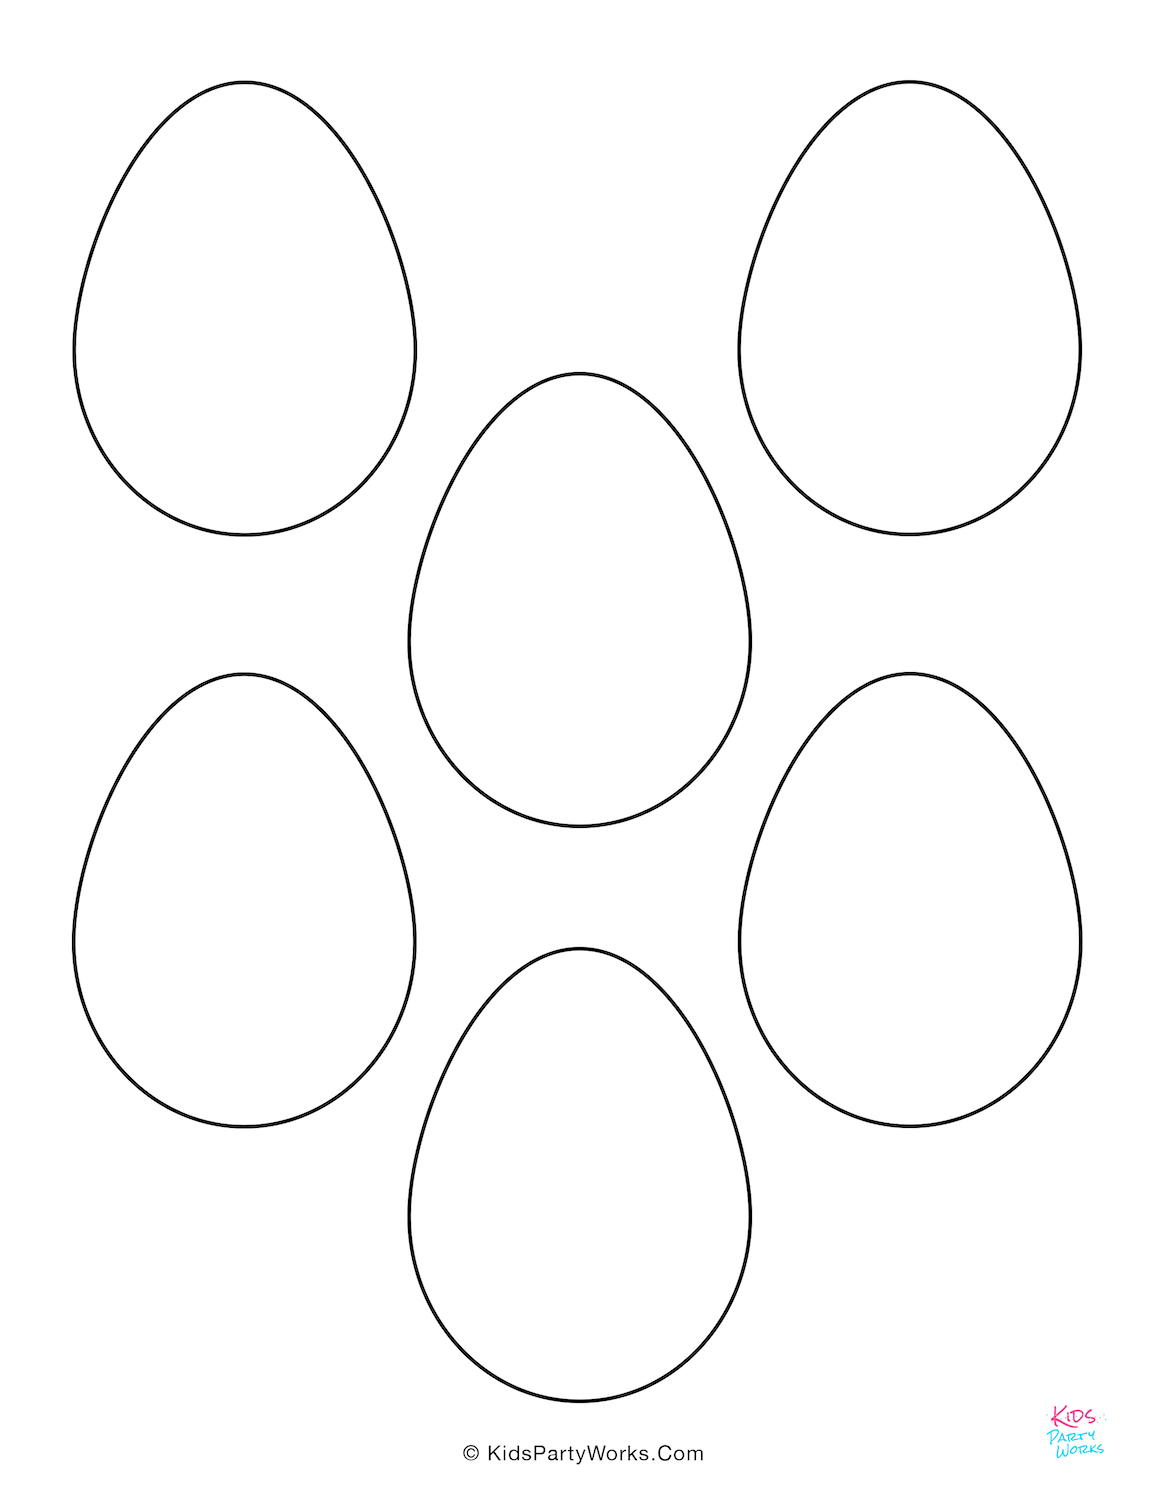 Easter Eggs Templates and Coloring Pages